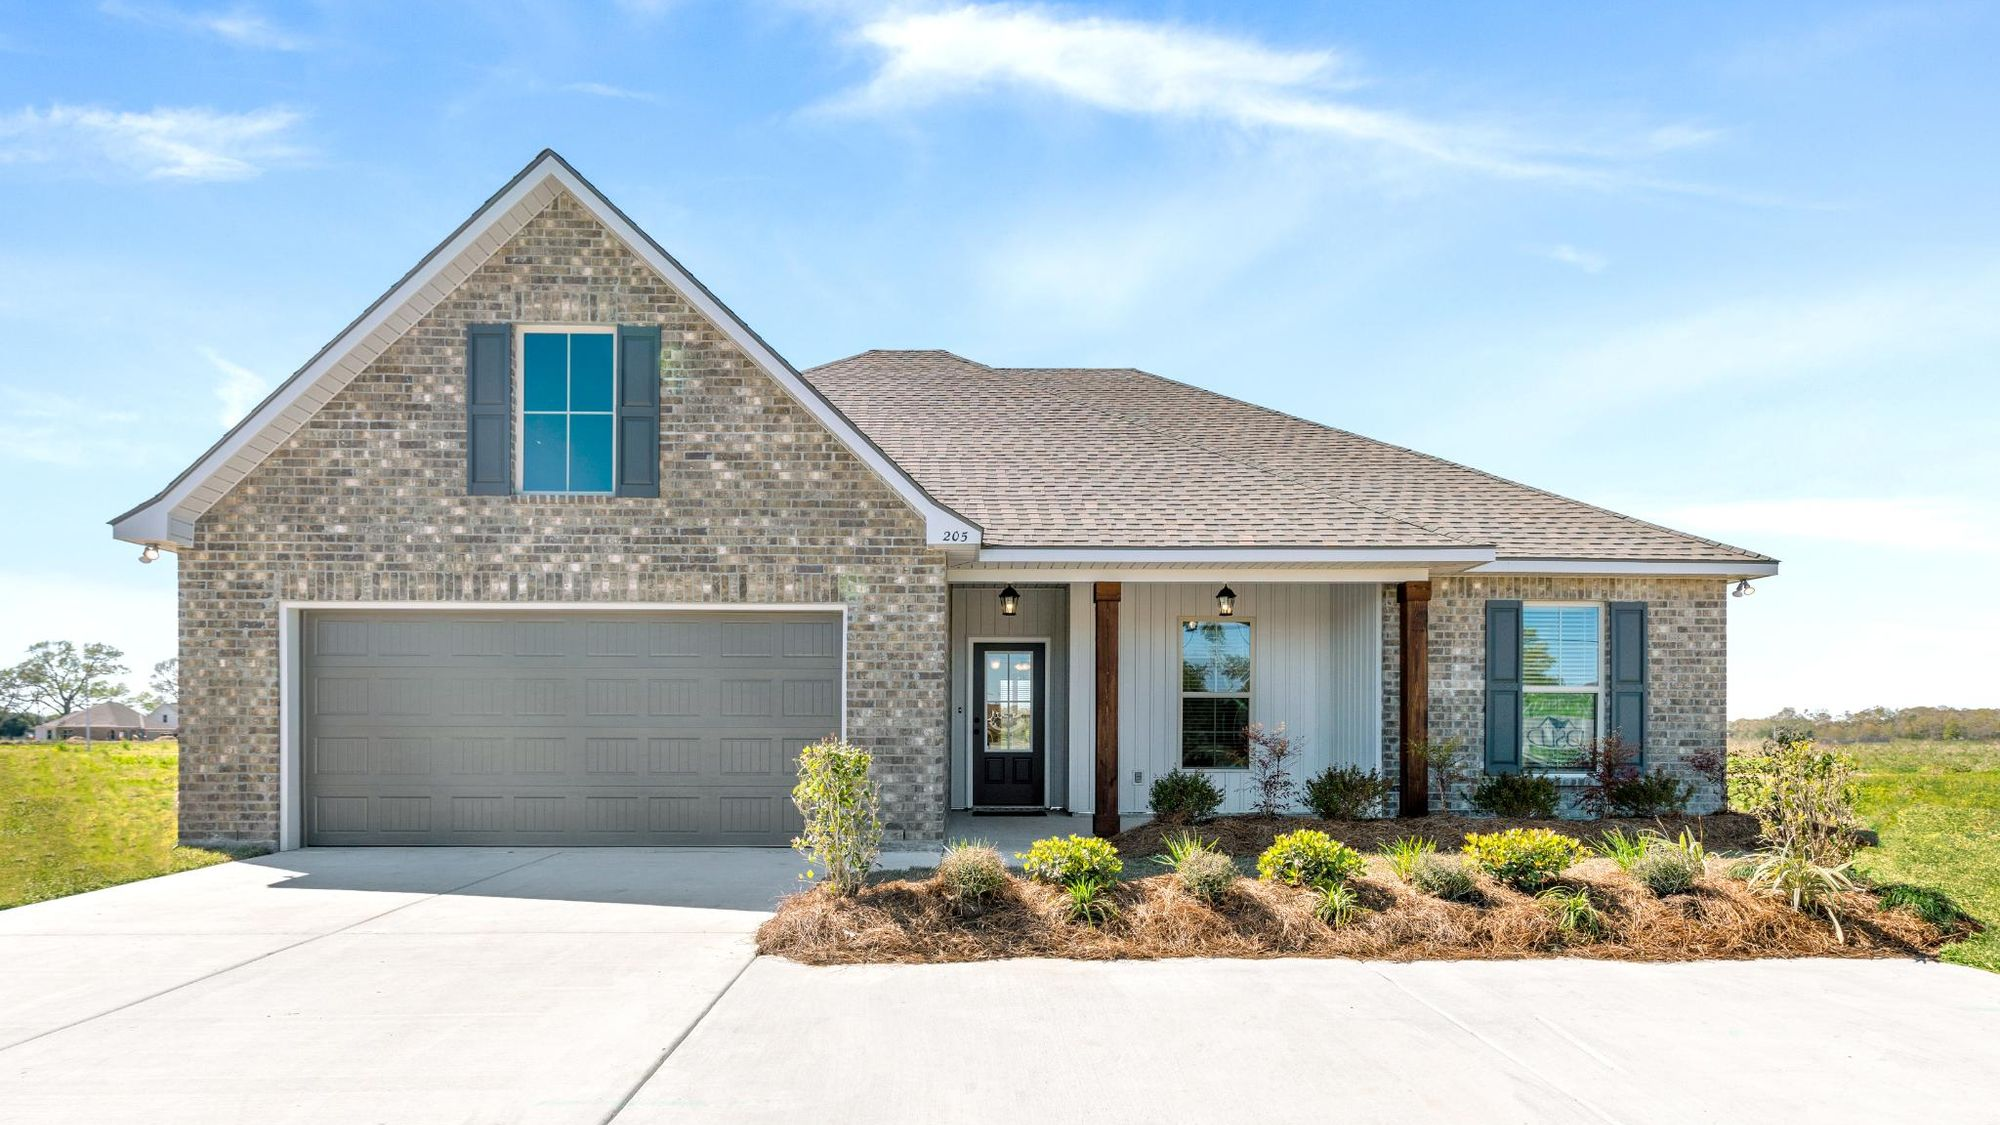 Acadian Meadows Model Home Exterior - DSLD Homes - Lafayette, LA